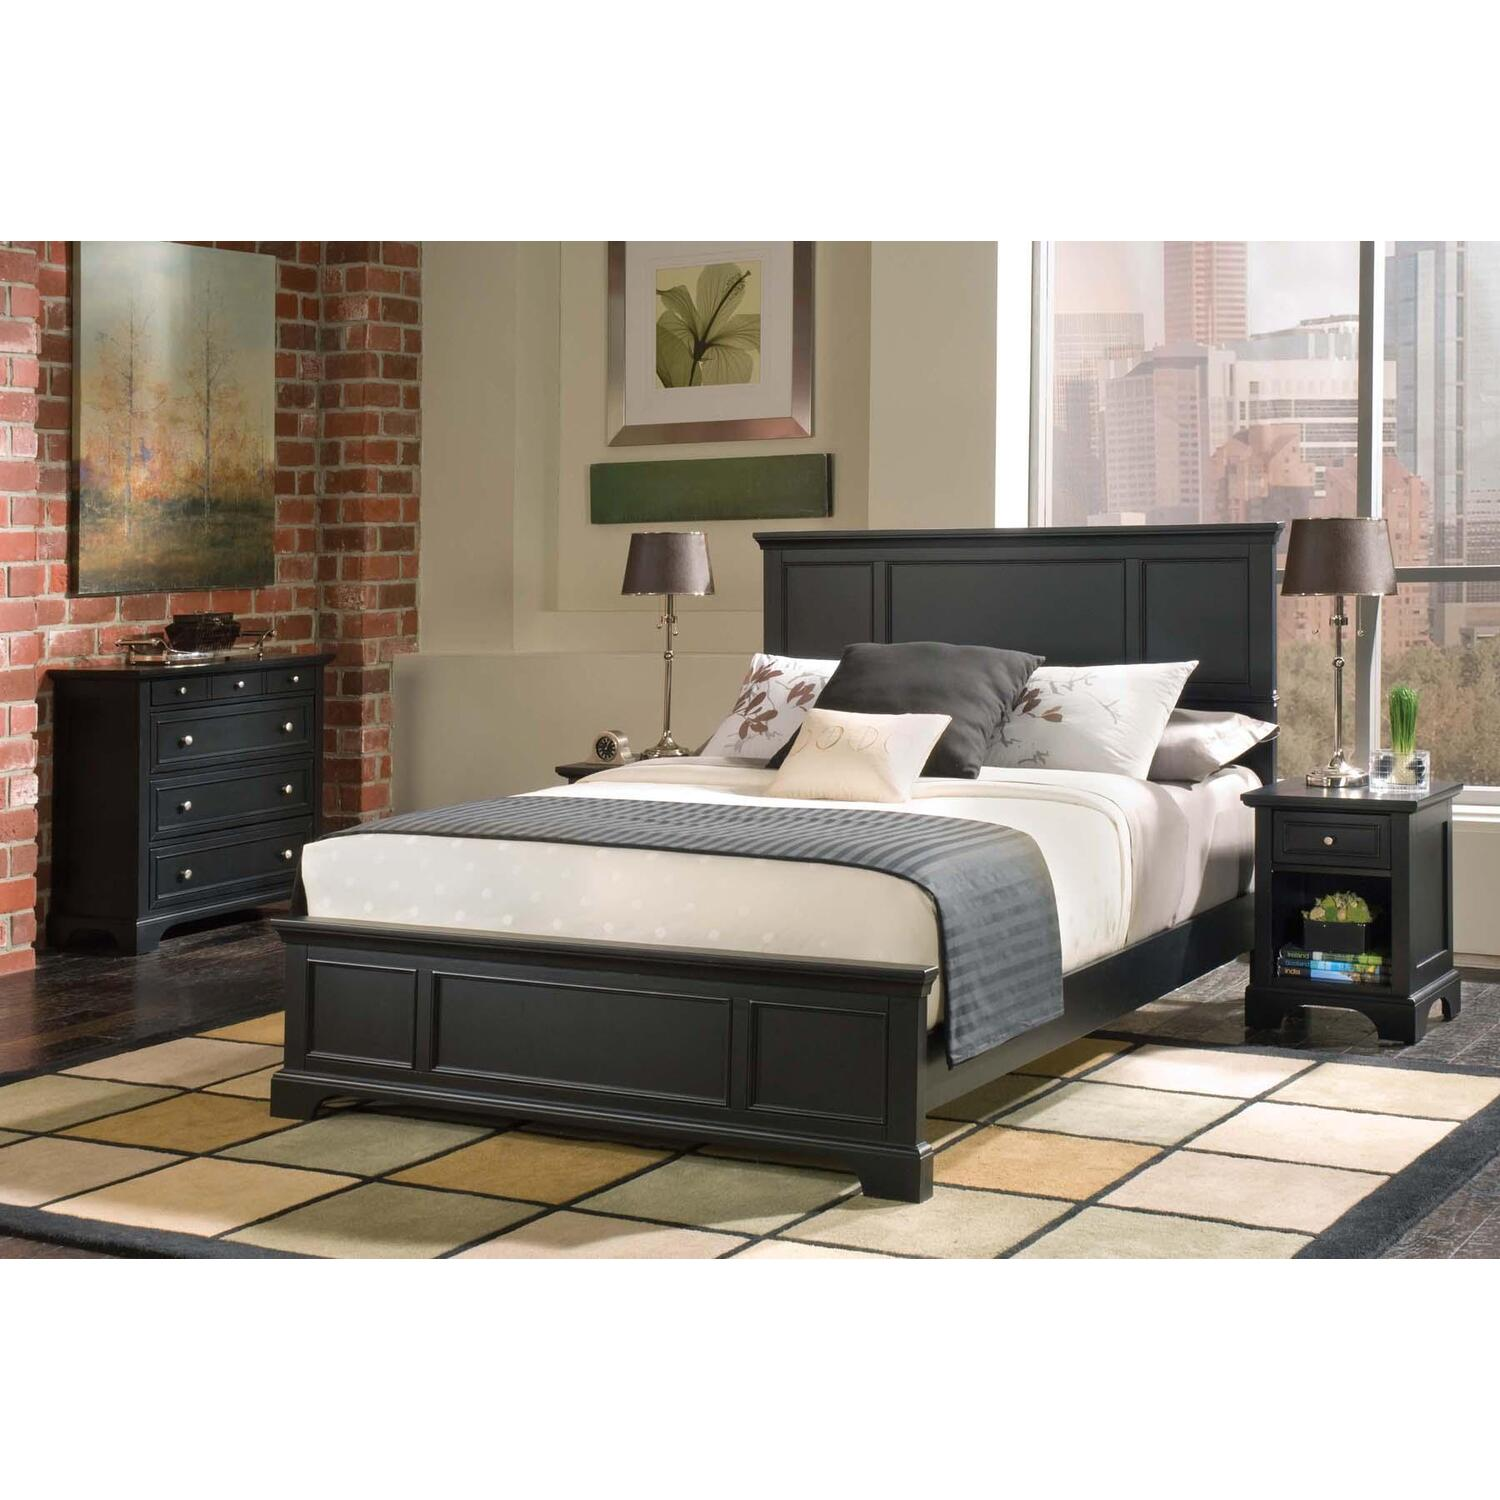 Home styles bedford queen bed night stand and chest by for Bedroom ideas queen bed